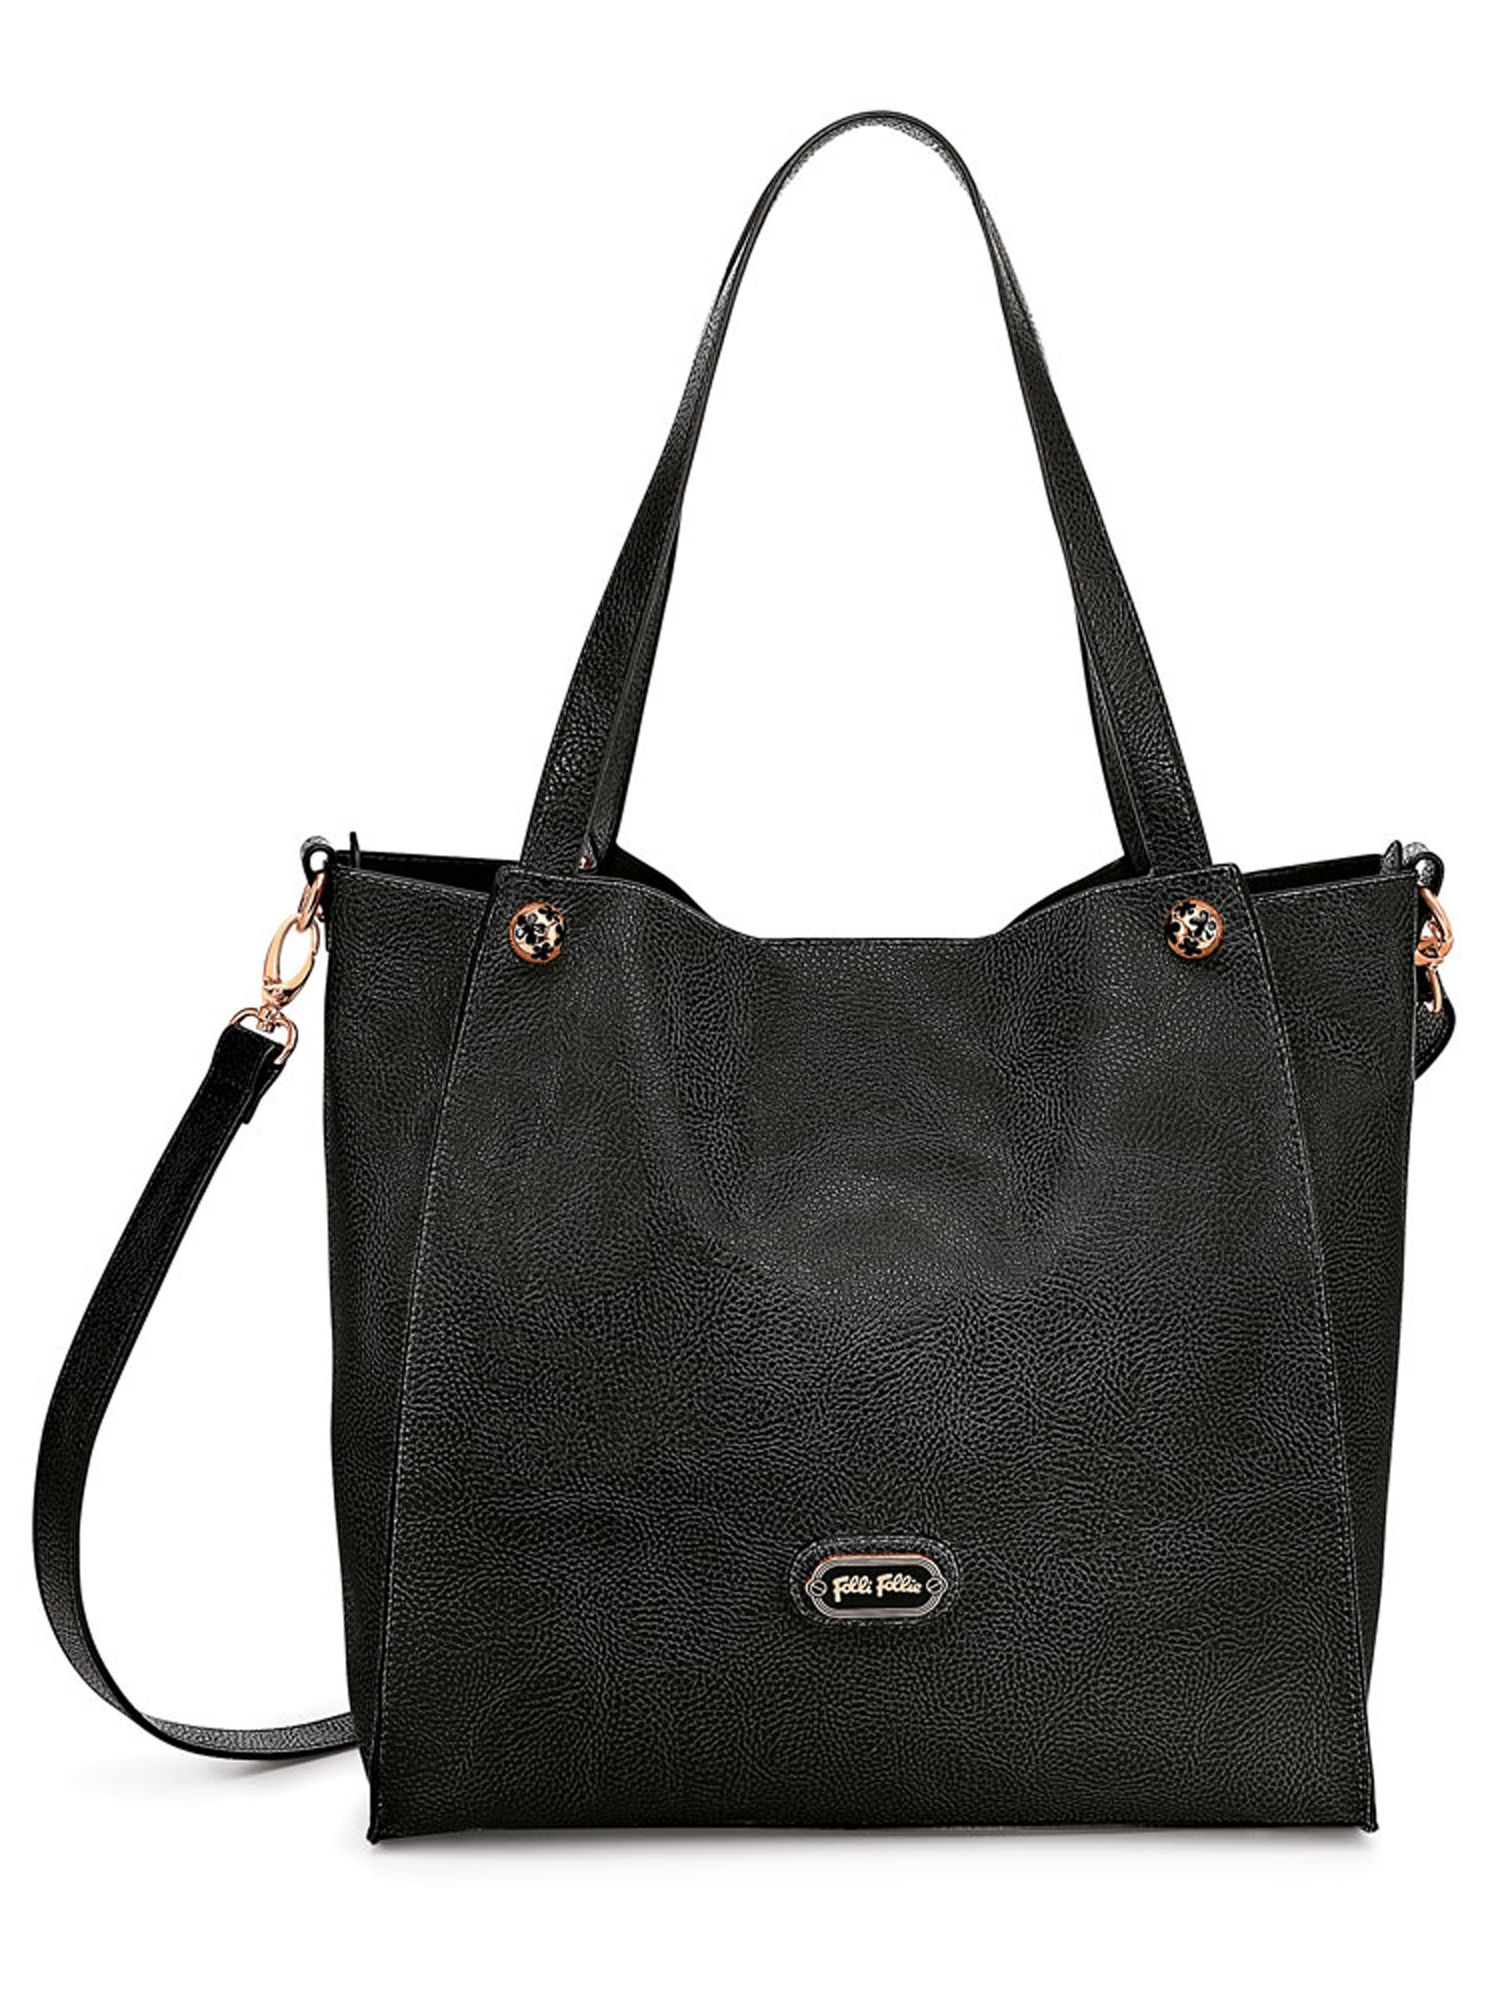 Flowerball shoulder bag black